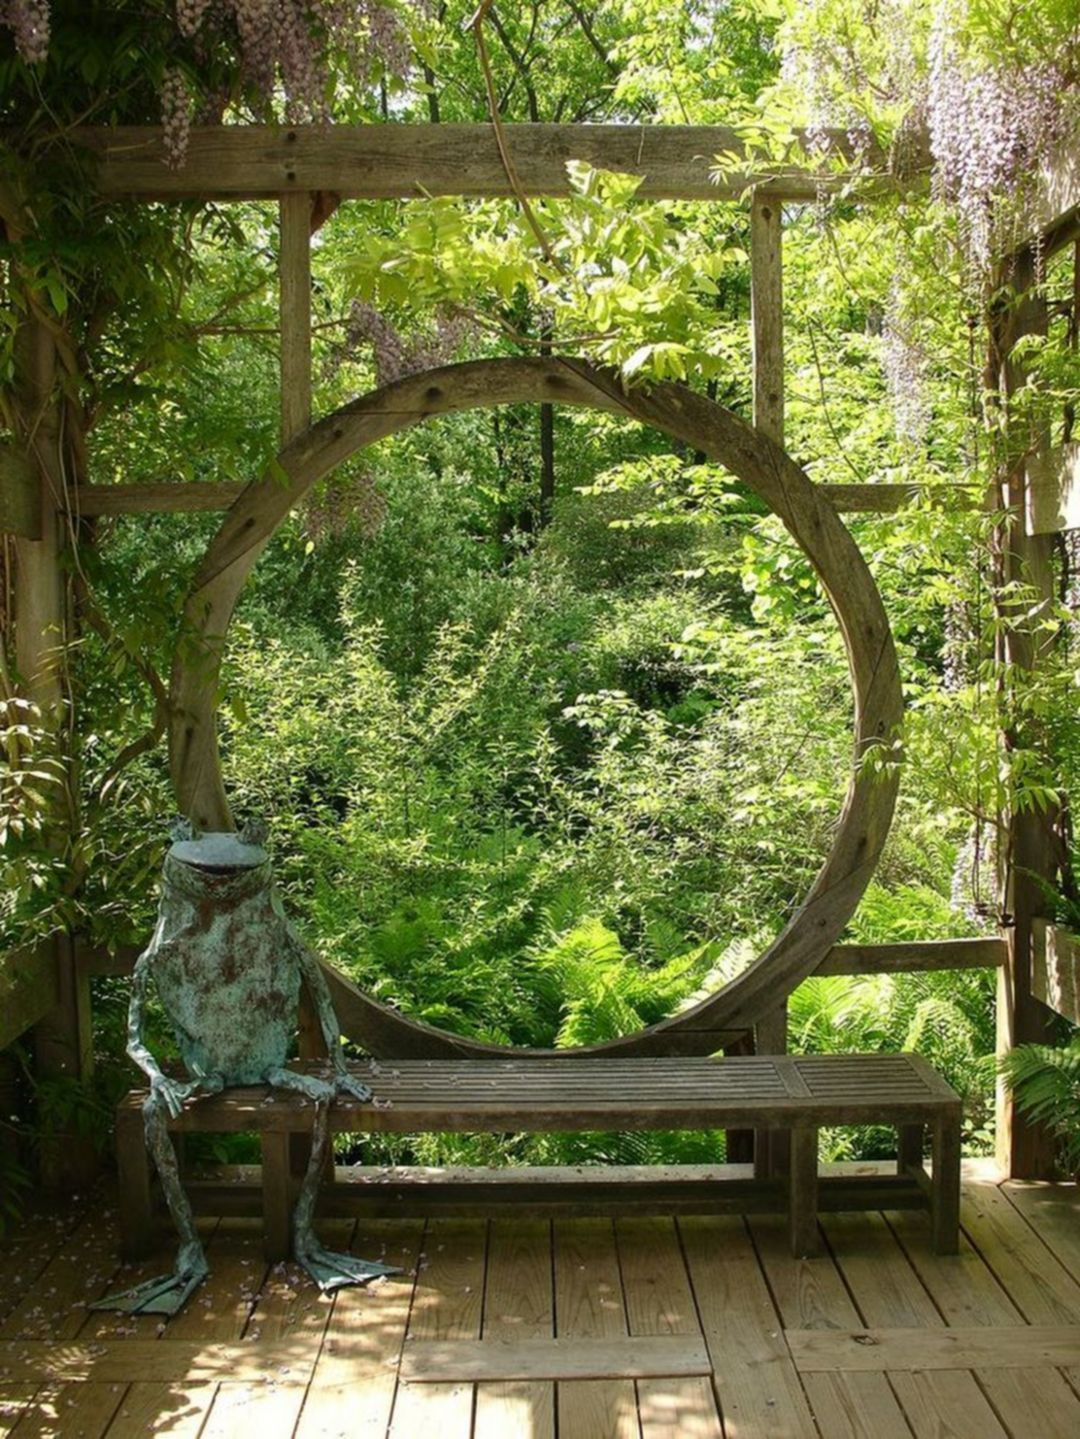 Amazing moongate garden ideas 130 with images moon